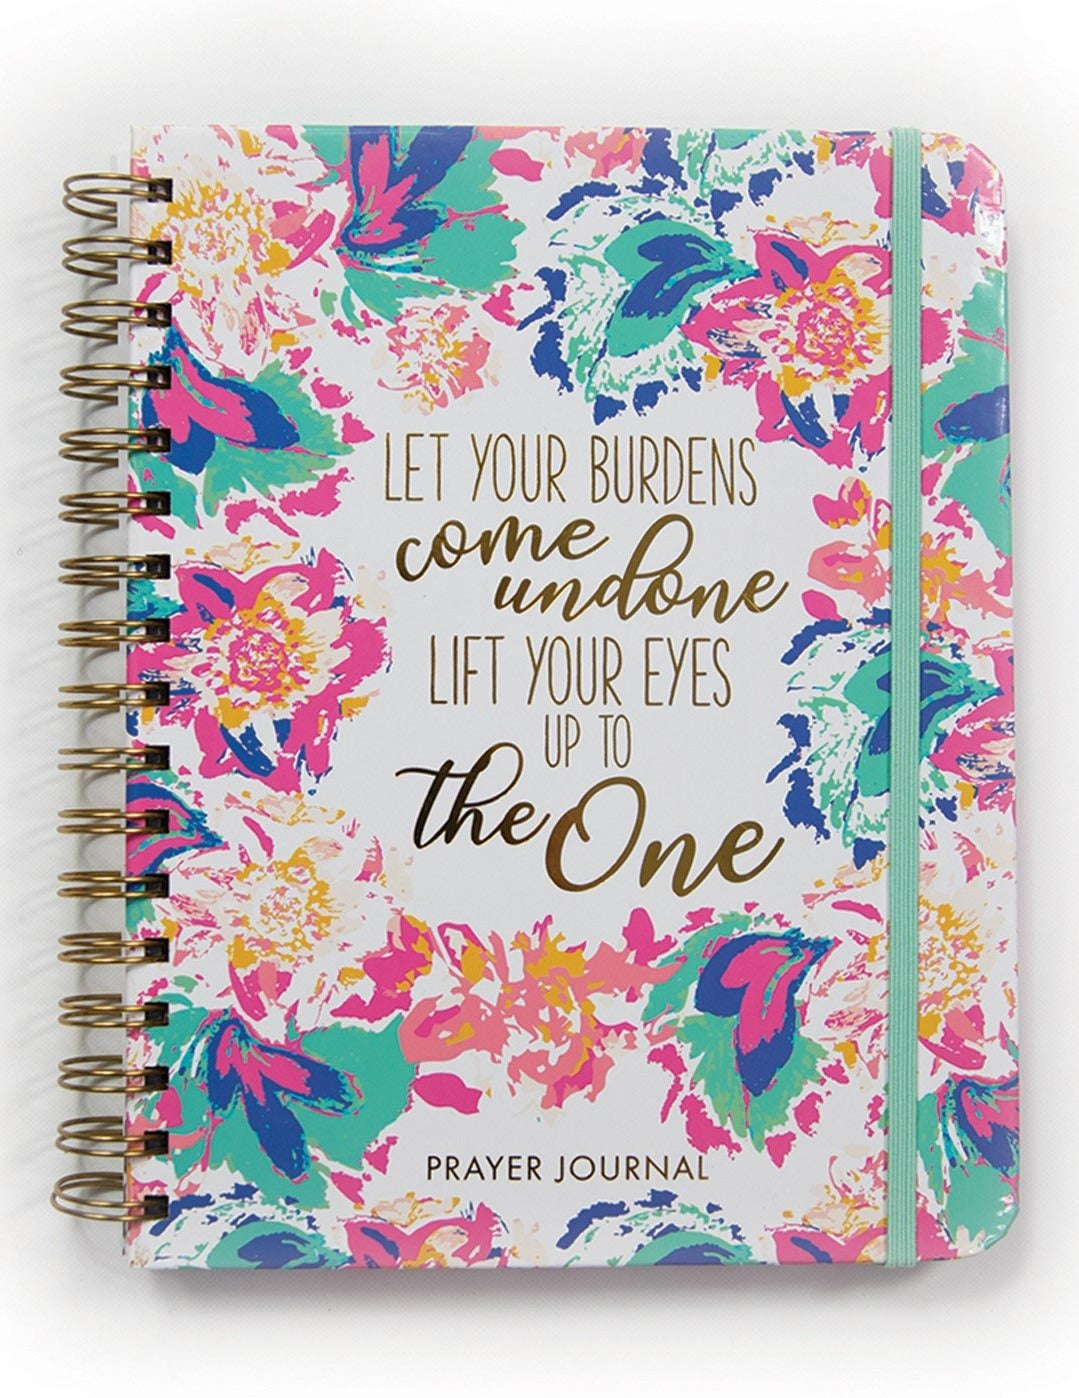 Let Your Burdens Come Undone Prayer Journal